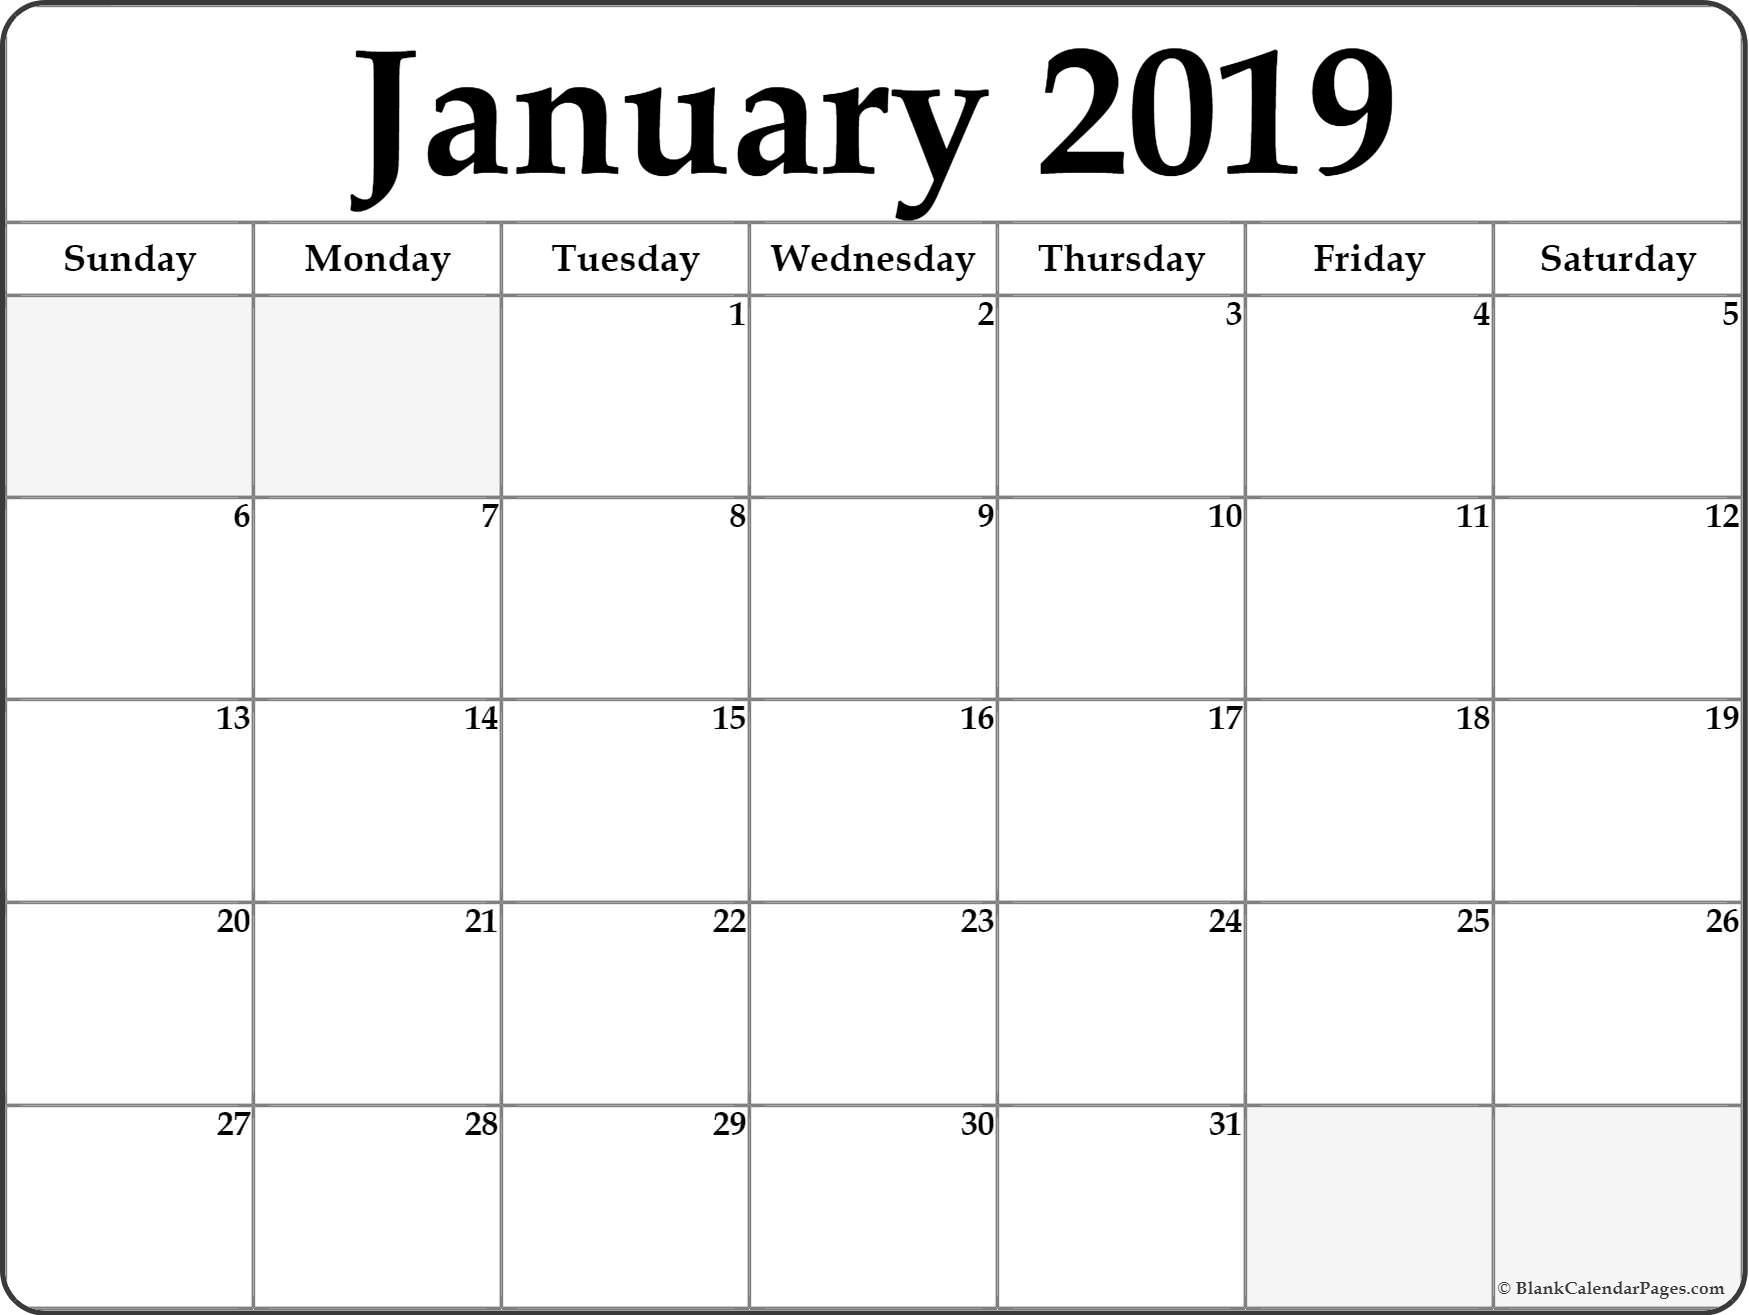 January 2019 Calendar | Free Printable Monthly Calendars intended for Blank Calendar Template Monday To Friday Only